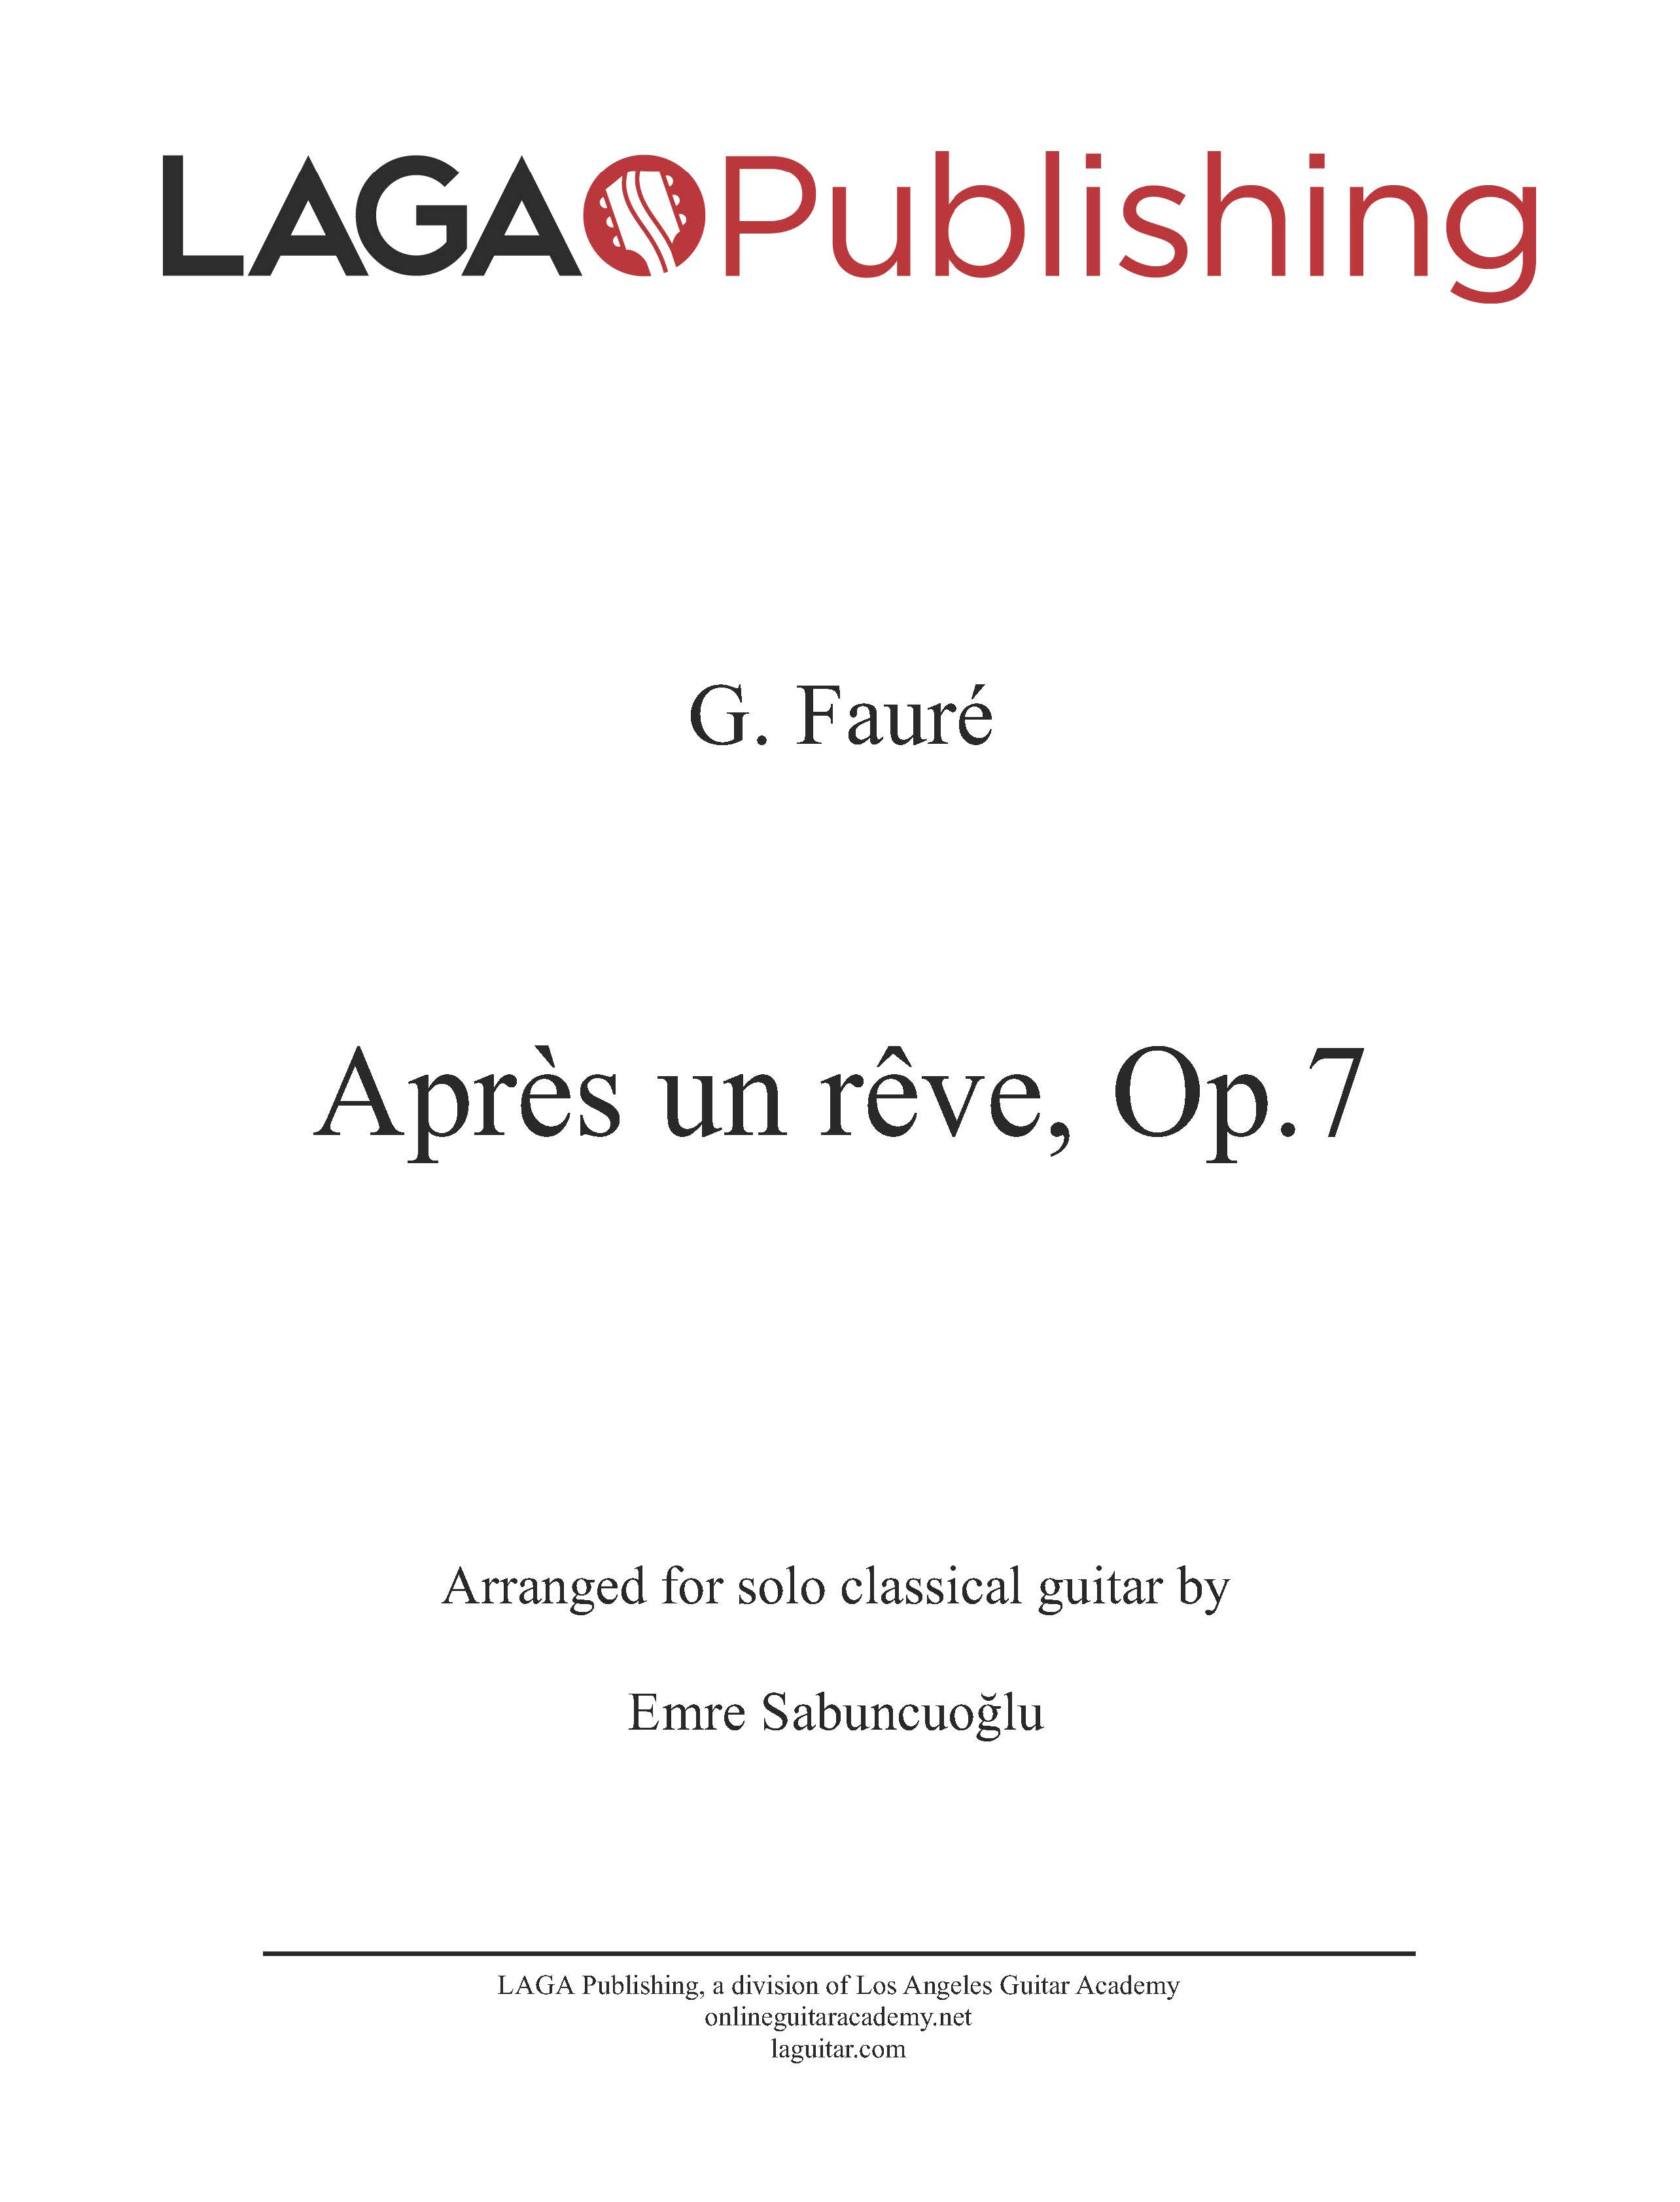 LAGA-Publishing-Faure-Apres-Un-Reve-Score-and-Tab